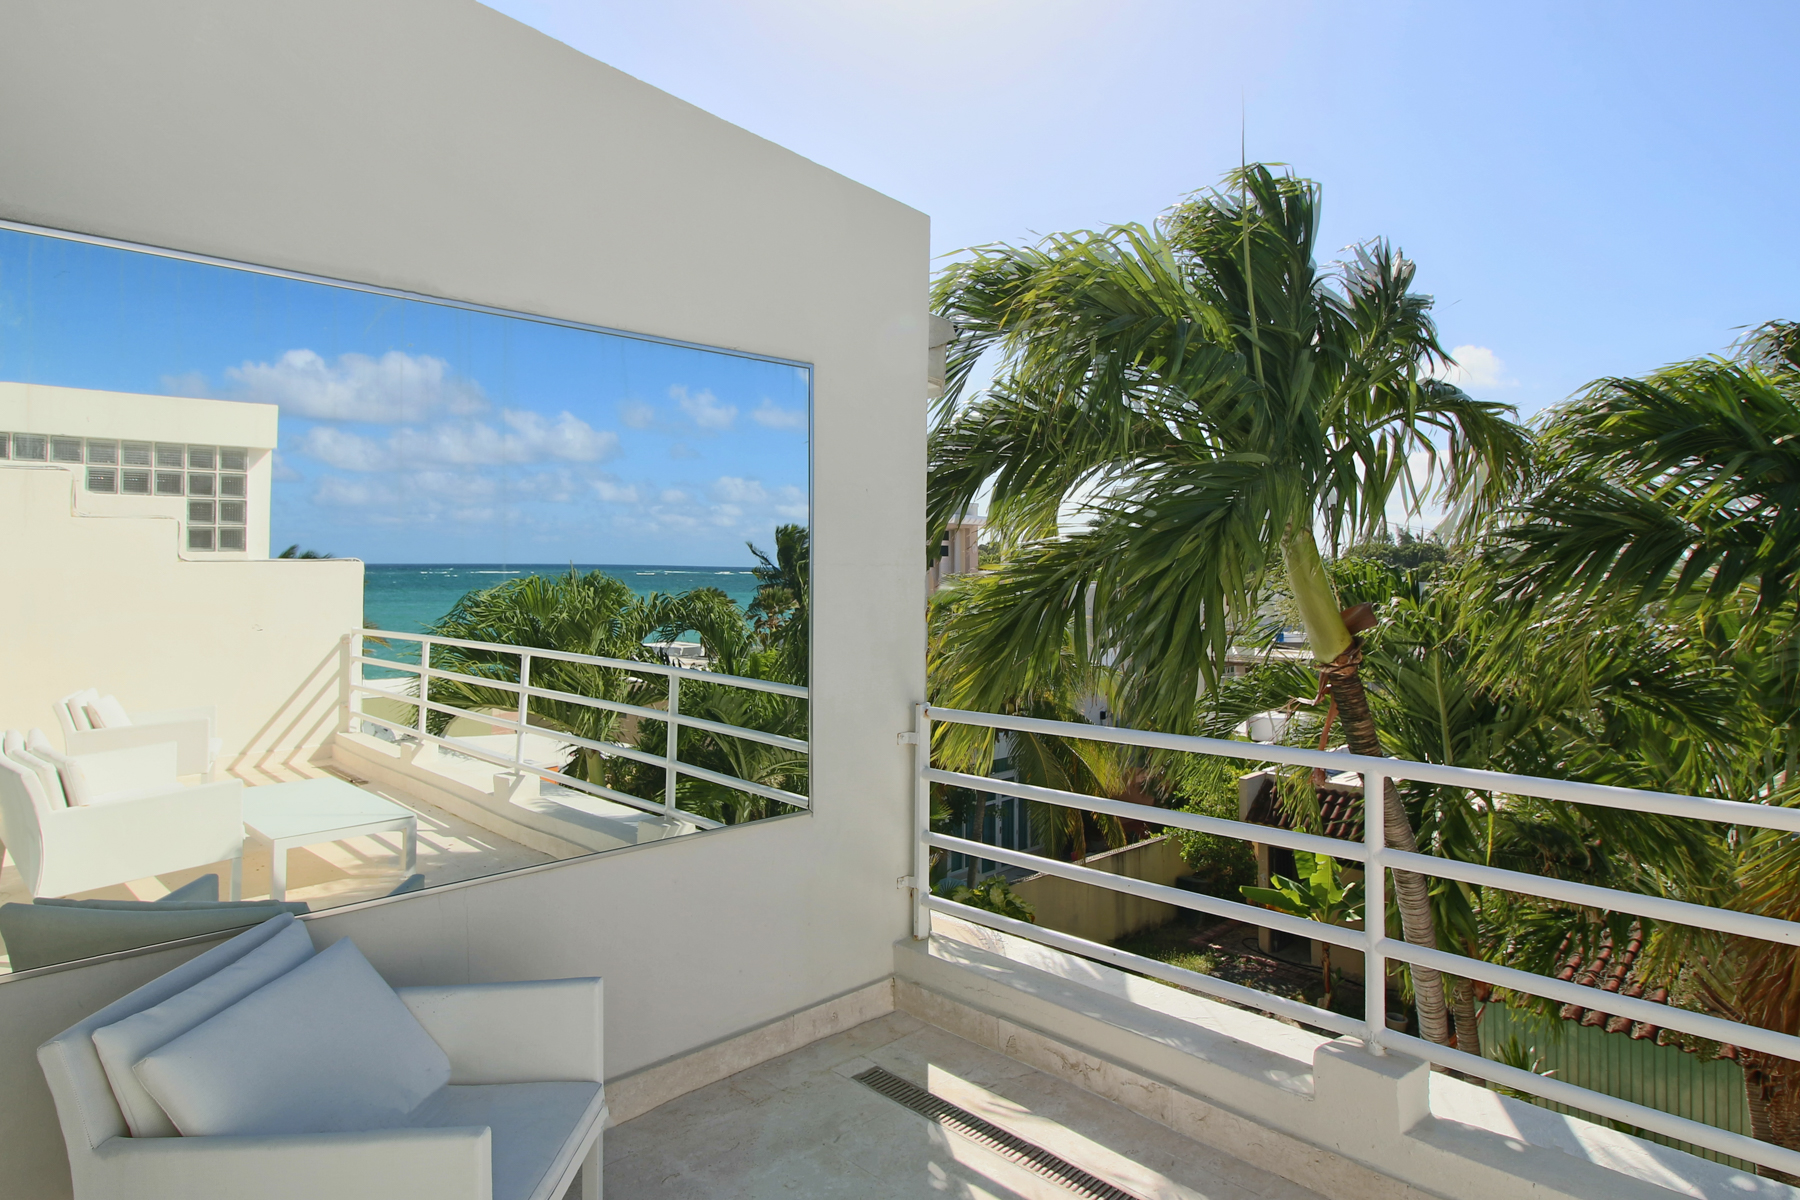 Additional photo for property listing at Gut Renovated Off Water Townhouse, Punta Las Marias 8E Calle Inga Chalets De Mar San Juan, Puerto Rico 00913 푸에르토리코